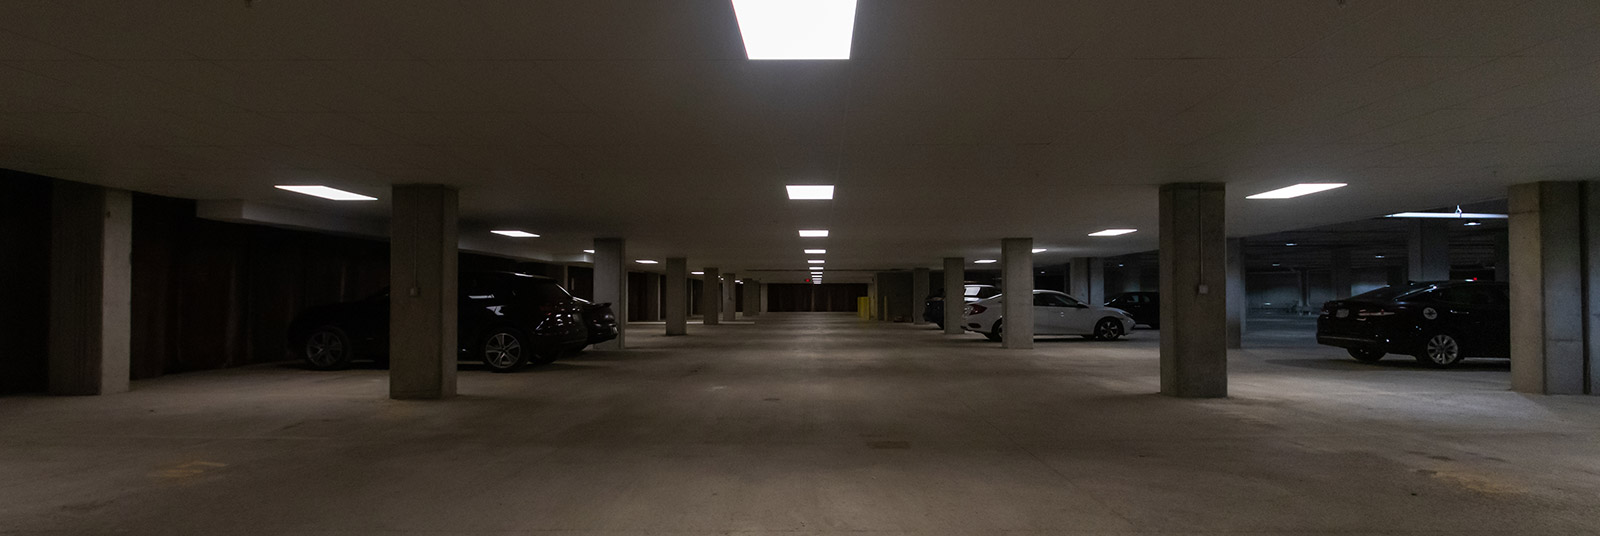 The parking garage at Xander on State in downtown Columbus, Ohio.